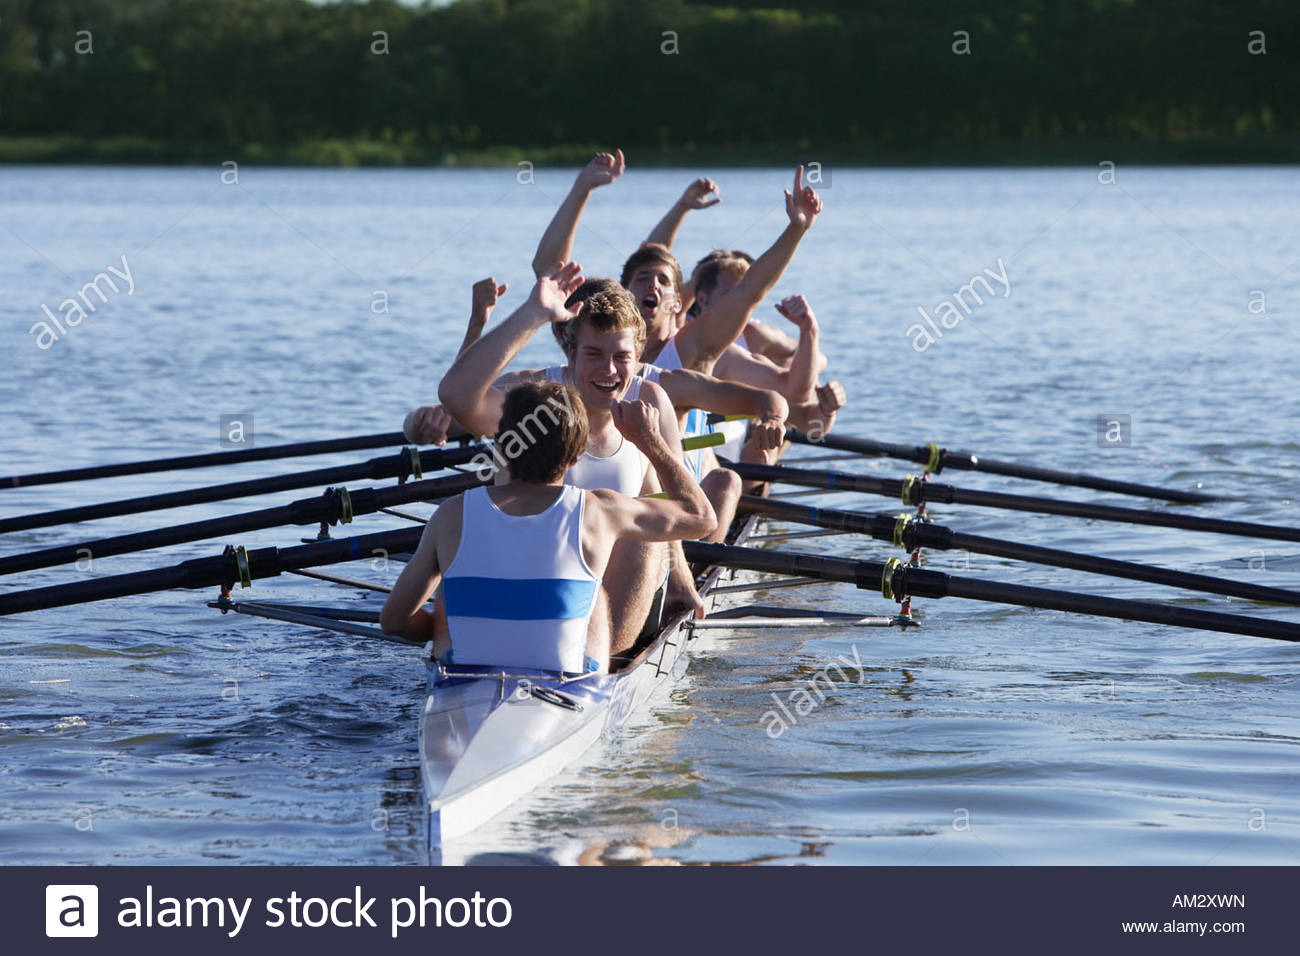 Athletes in a crew row boat cheering - Stock Image